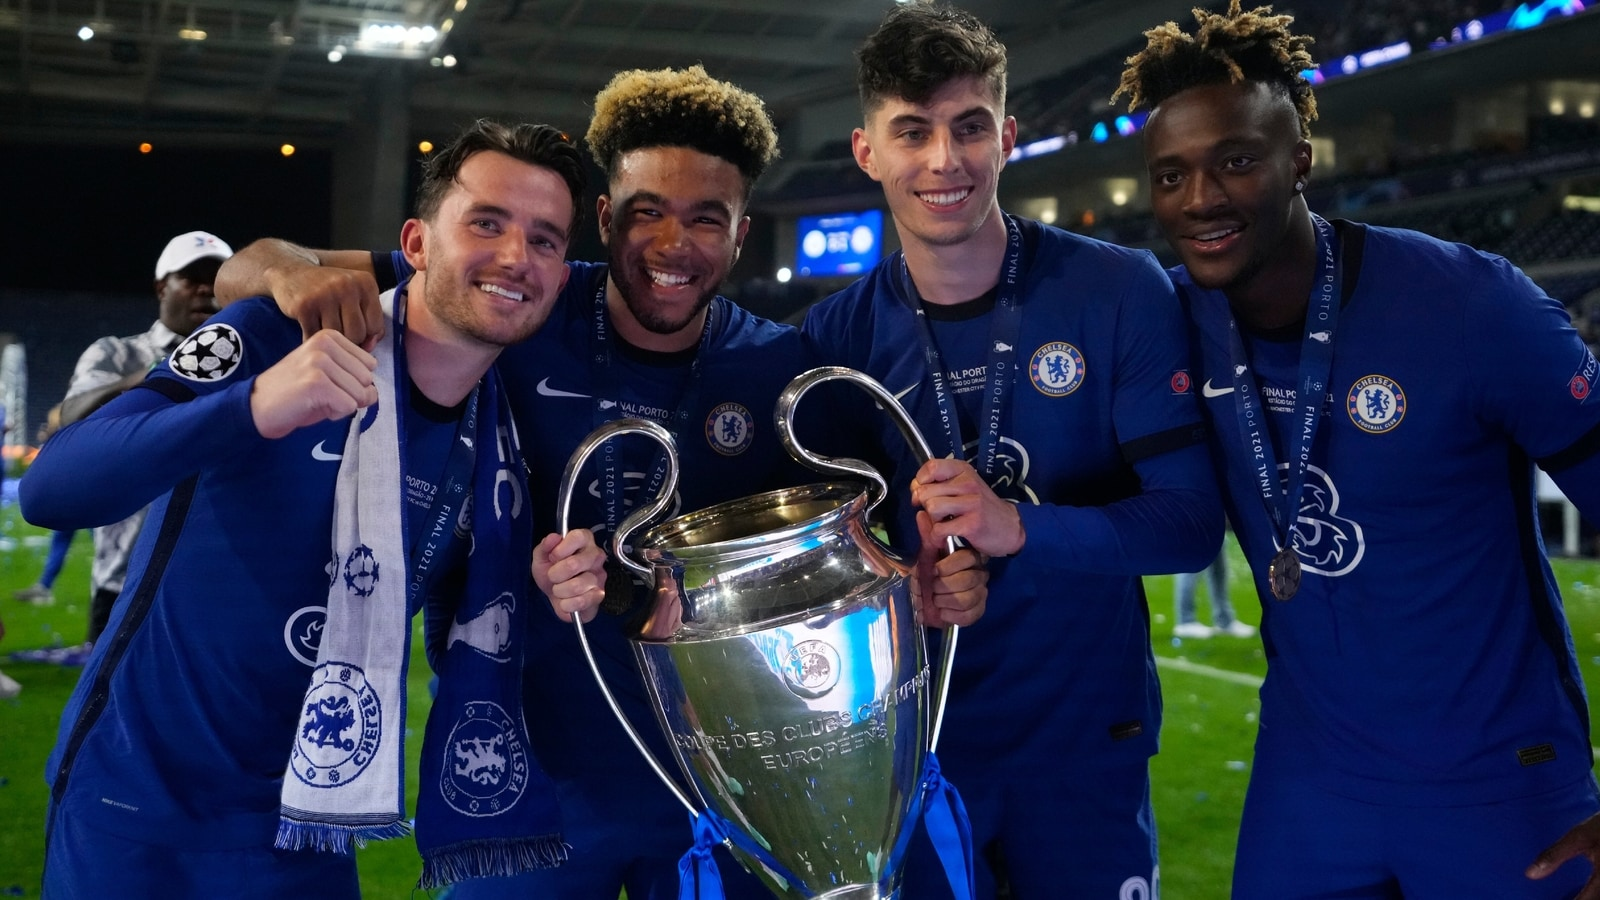 Chelsea beat Manchester City to win UEFA Champions League   In 1600x900